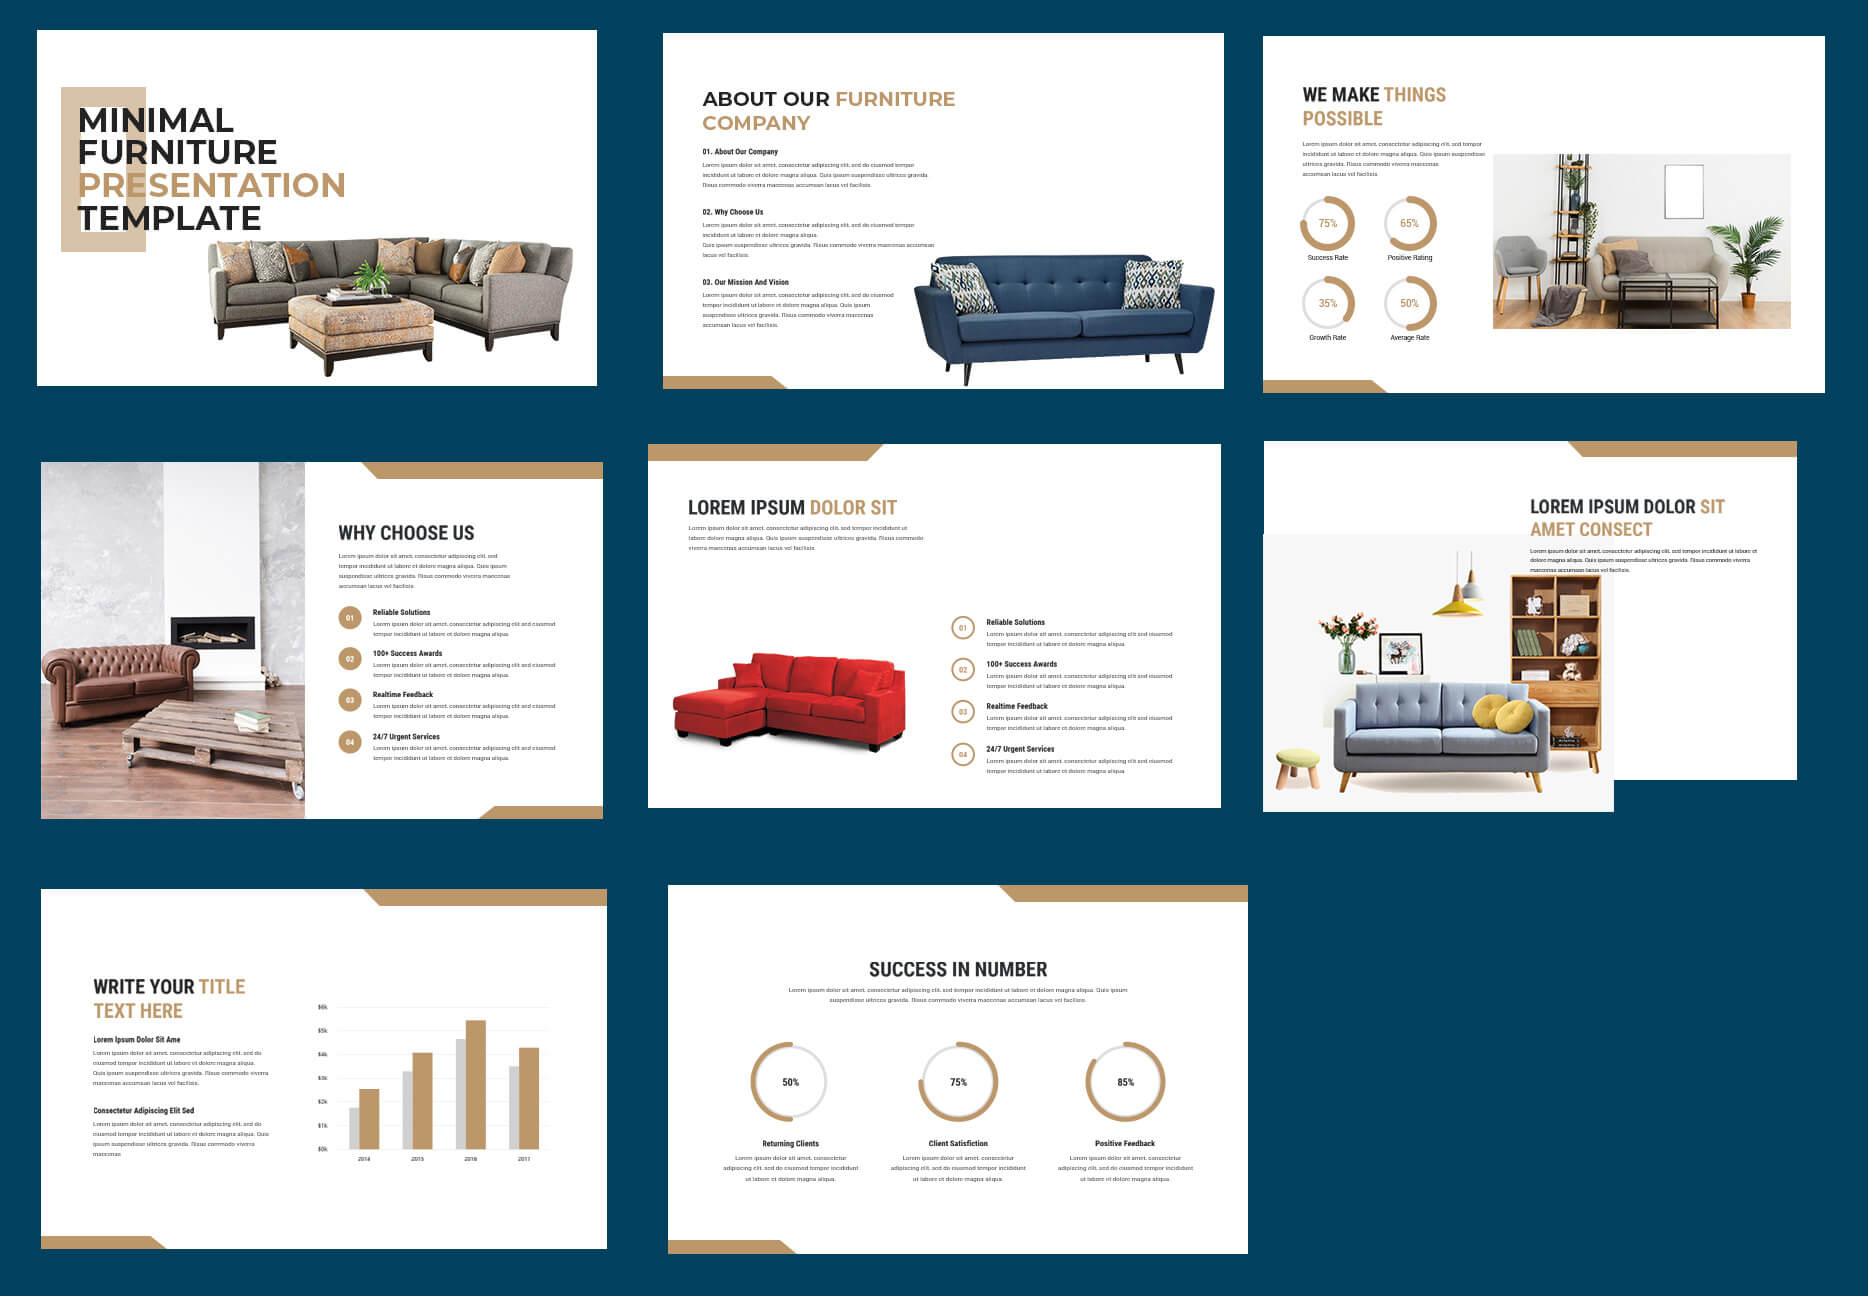 business presentation Free Template in PSD